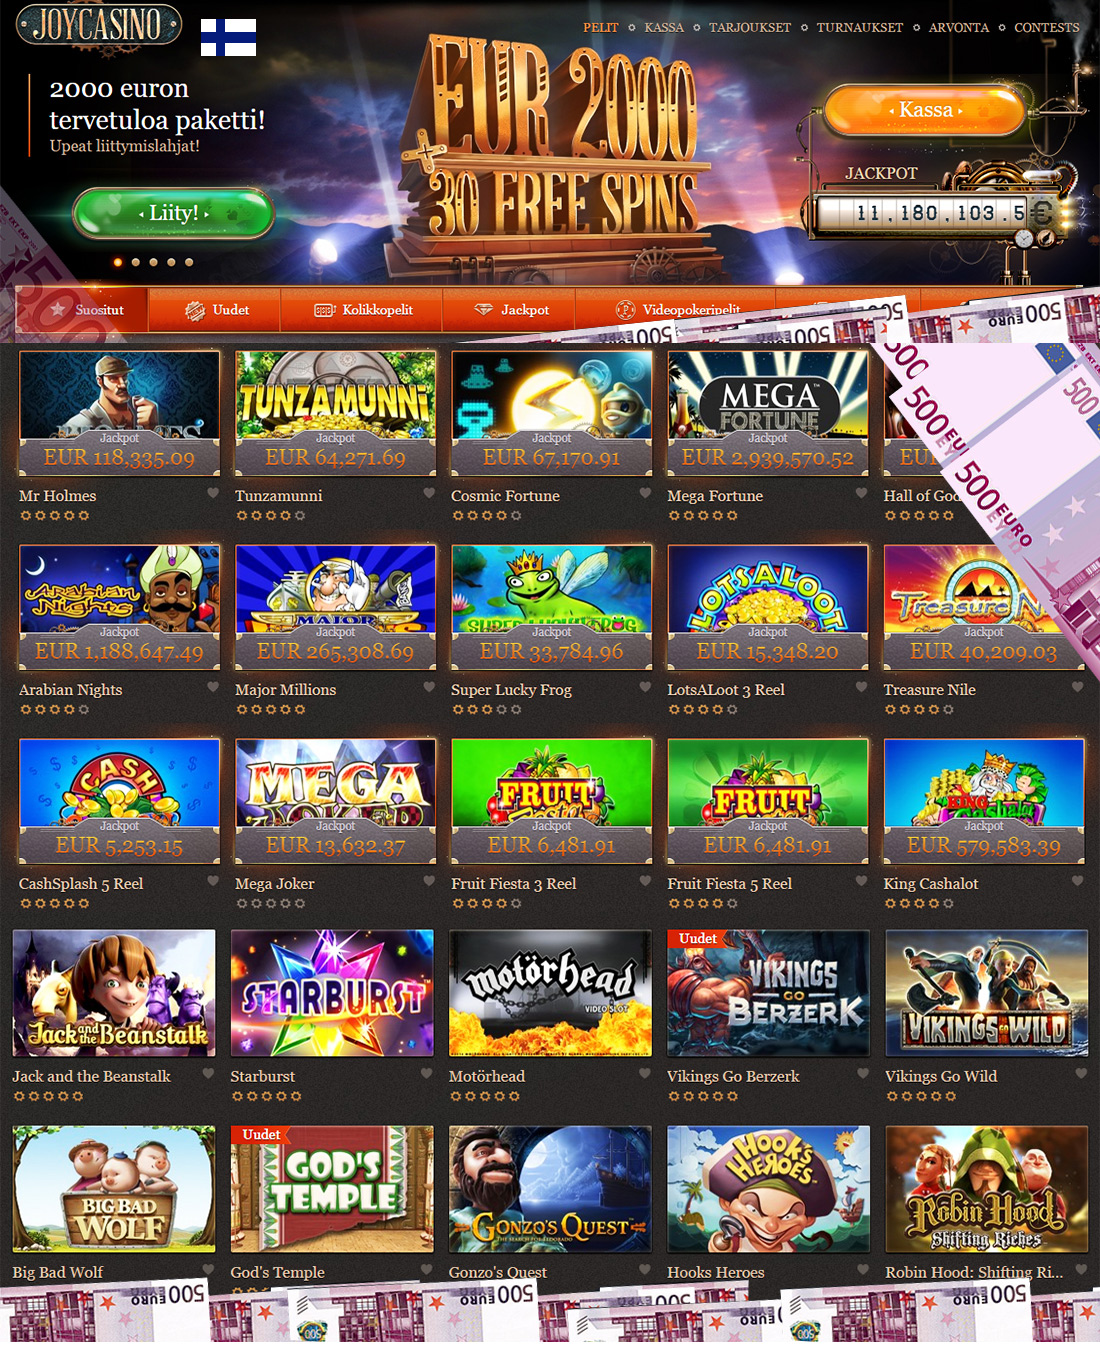 Online casino golden nugget